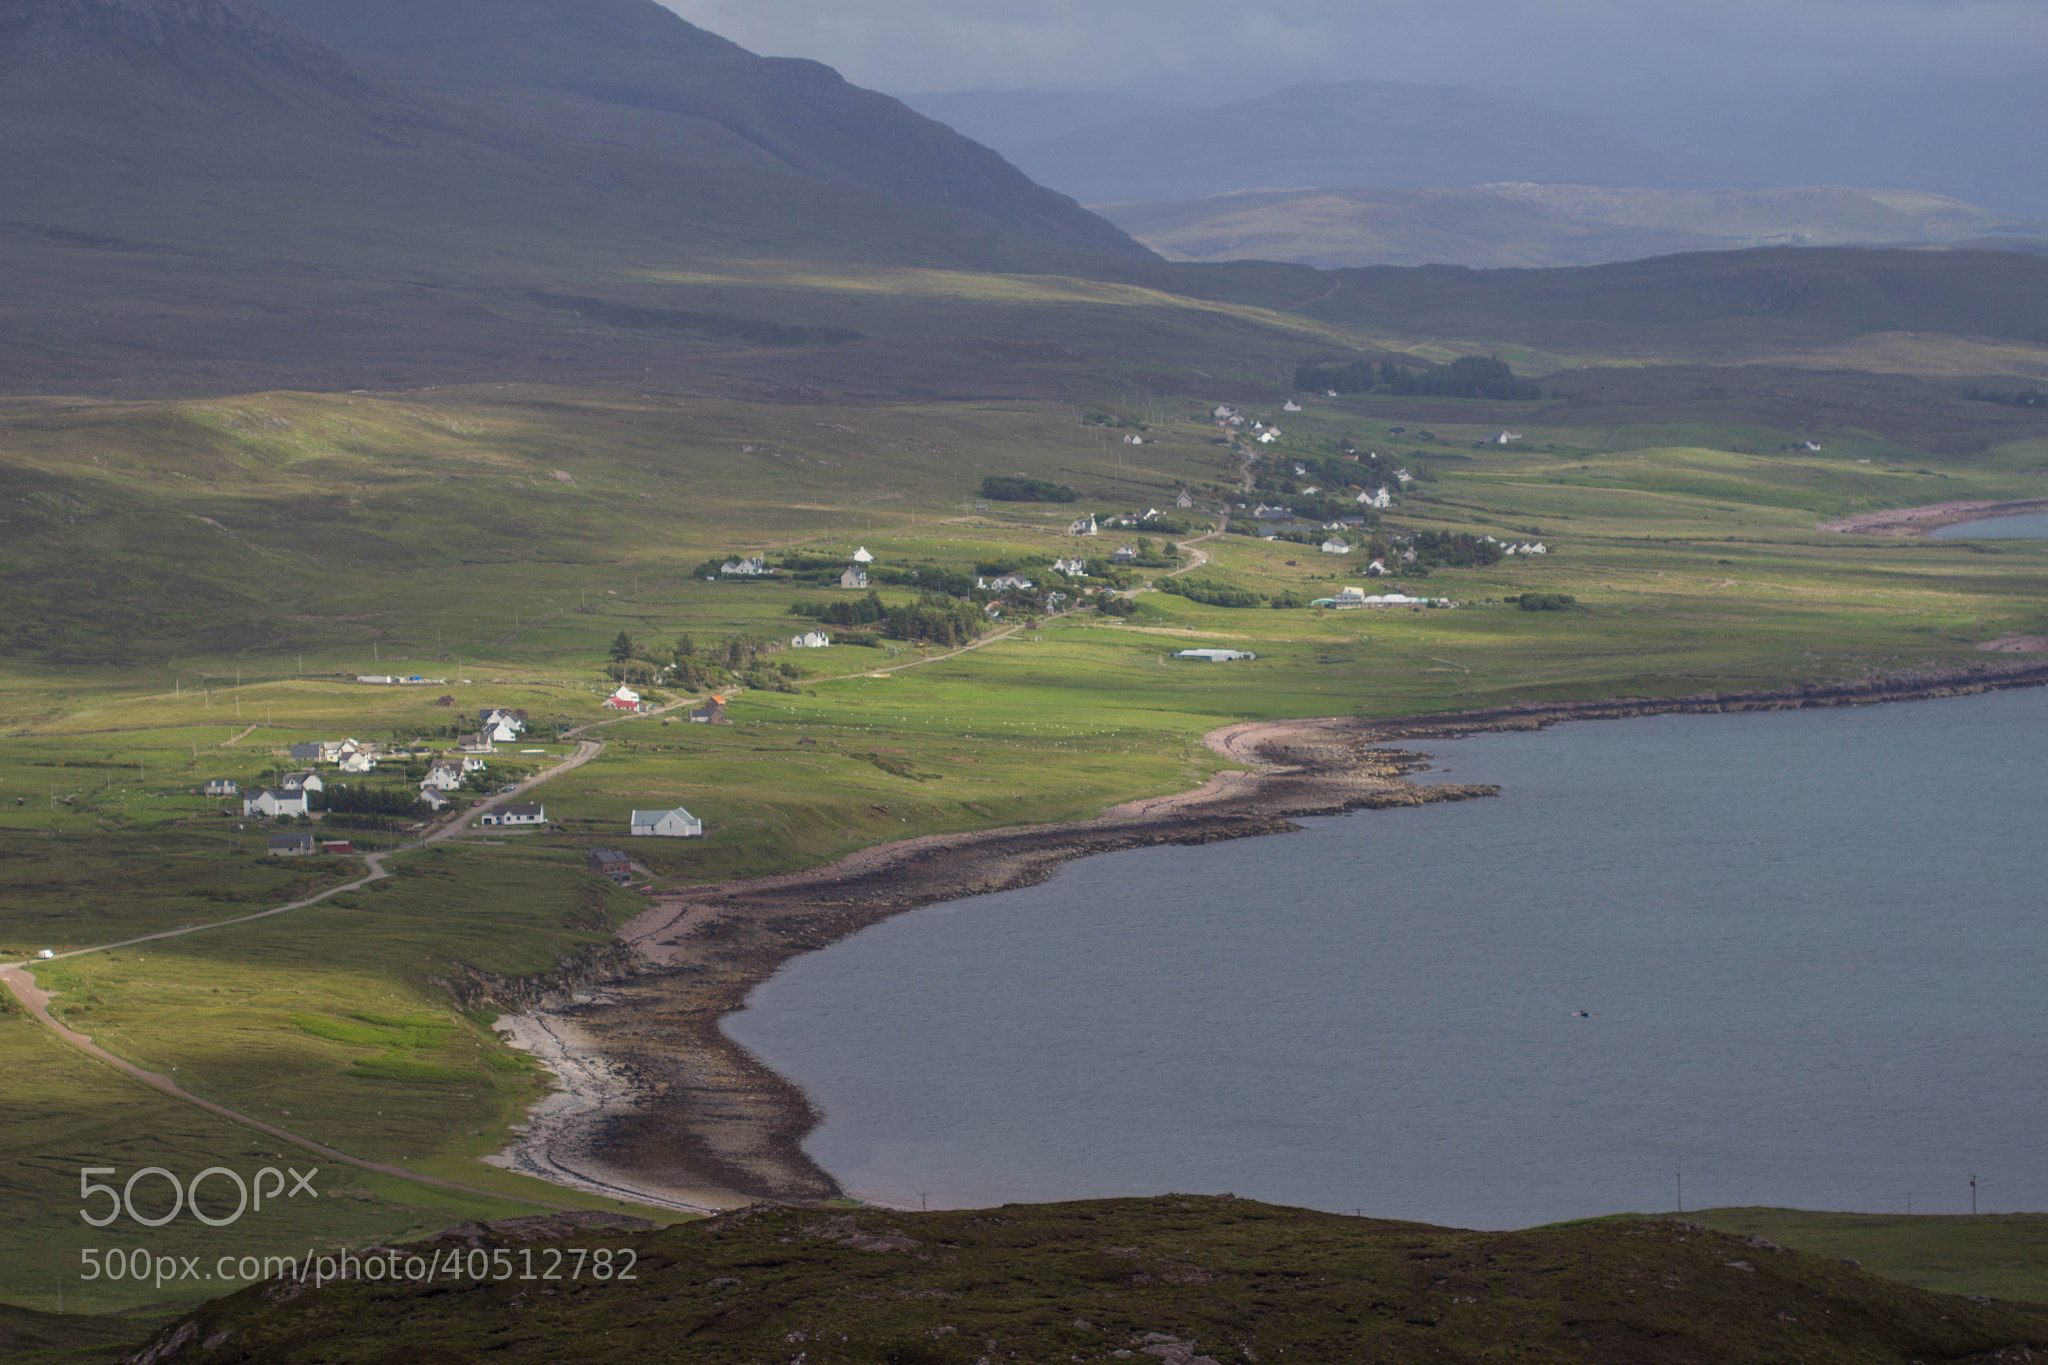 Photograph The Highland town of Achitibuie  by Dan James on 500px